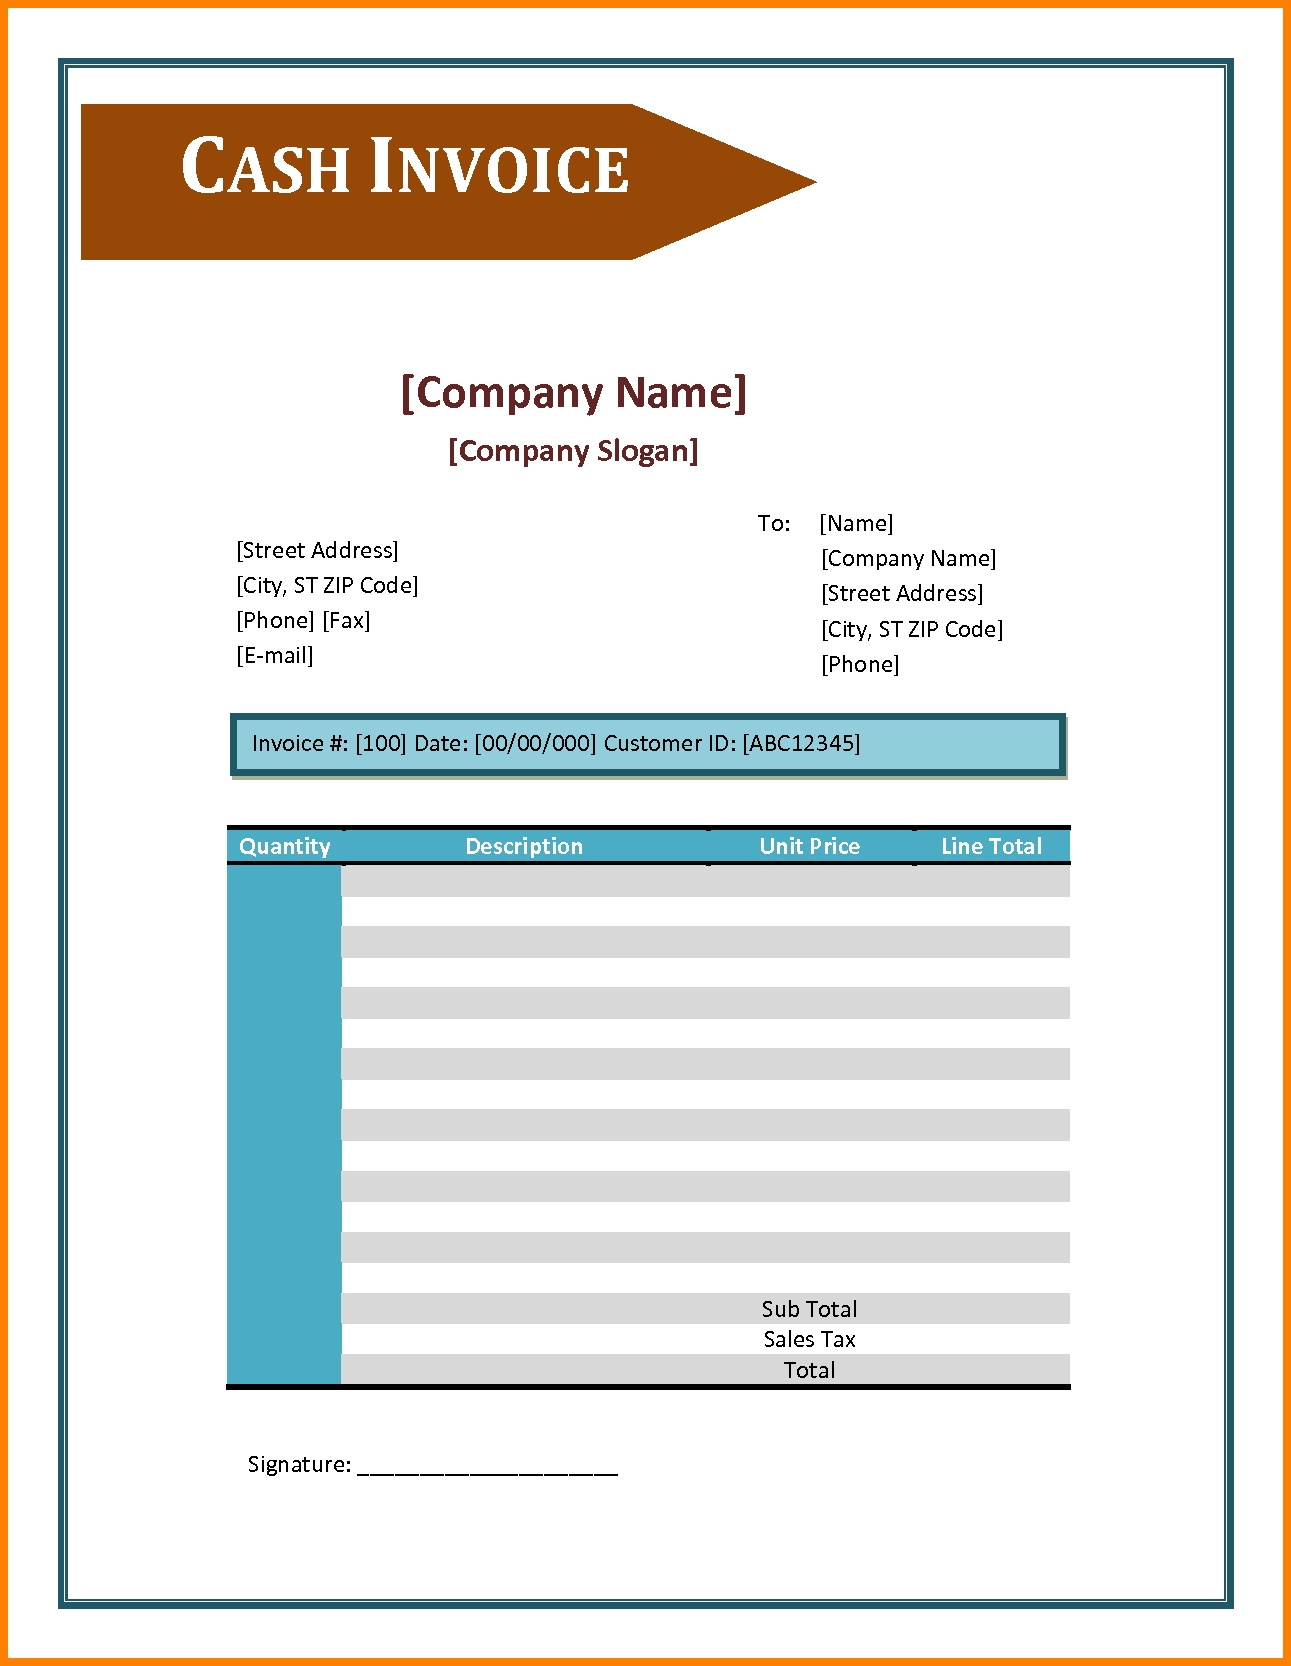 Cash Invoice Sample